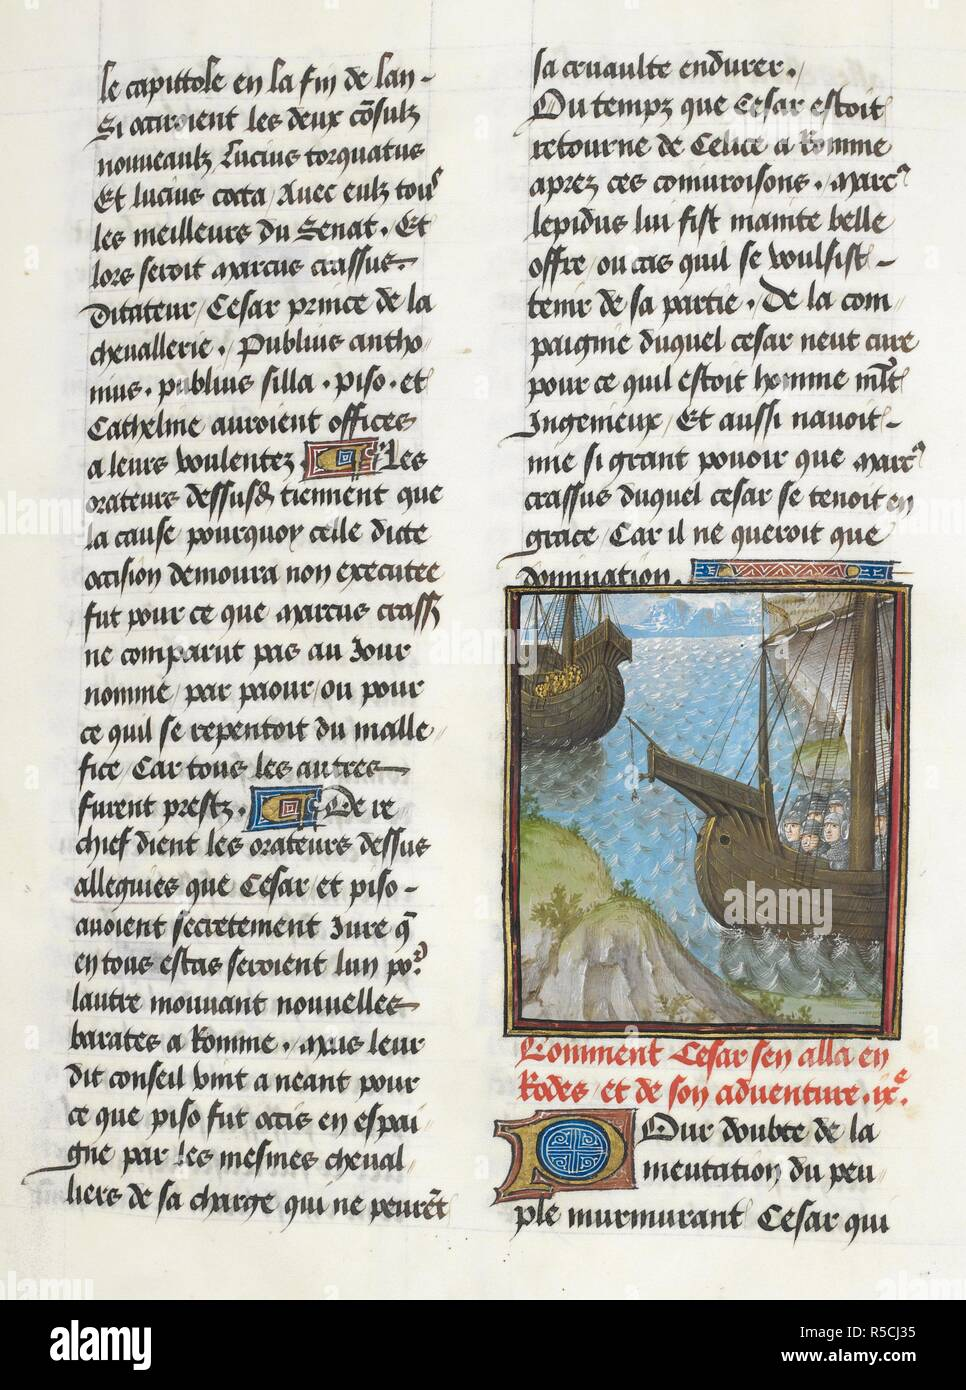 Voyage to Rhodes (Book 1, 9). Caesar, translated by Jan Du Quesne (or Jean Duchesne), Bellum Gallicum ( Les commentaires de Cesar ). 1473-1476. Source: Royal 16 G.VIII, f.35. Author: JULIUS CAESAR. Du Quesne, Jehan. Circle of the Master of the London Wavrin. - Stock Image